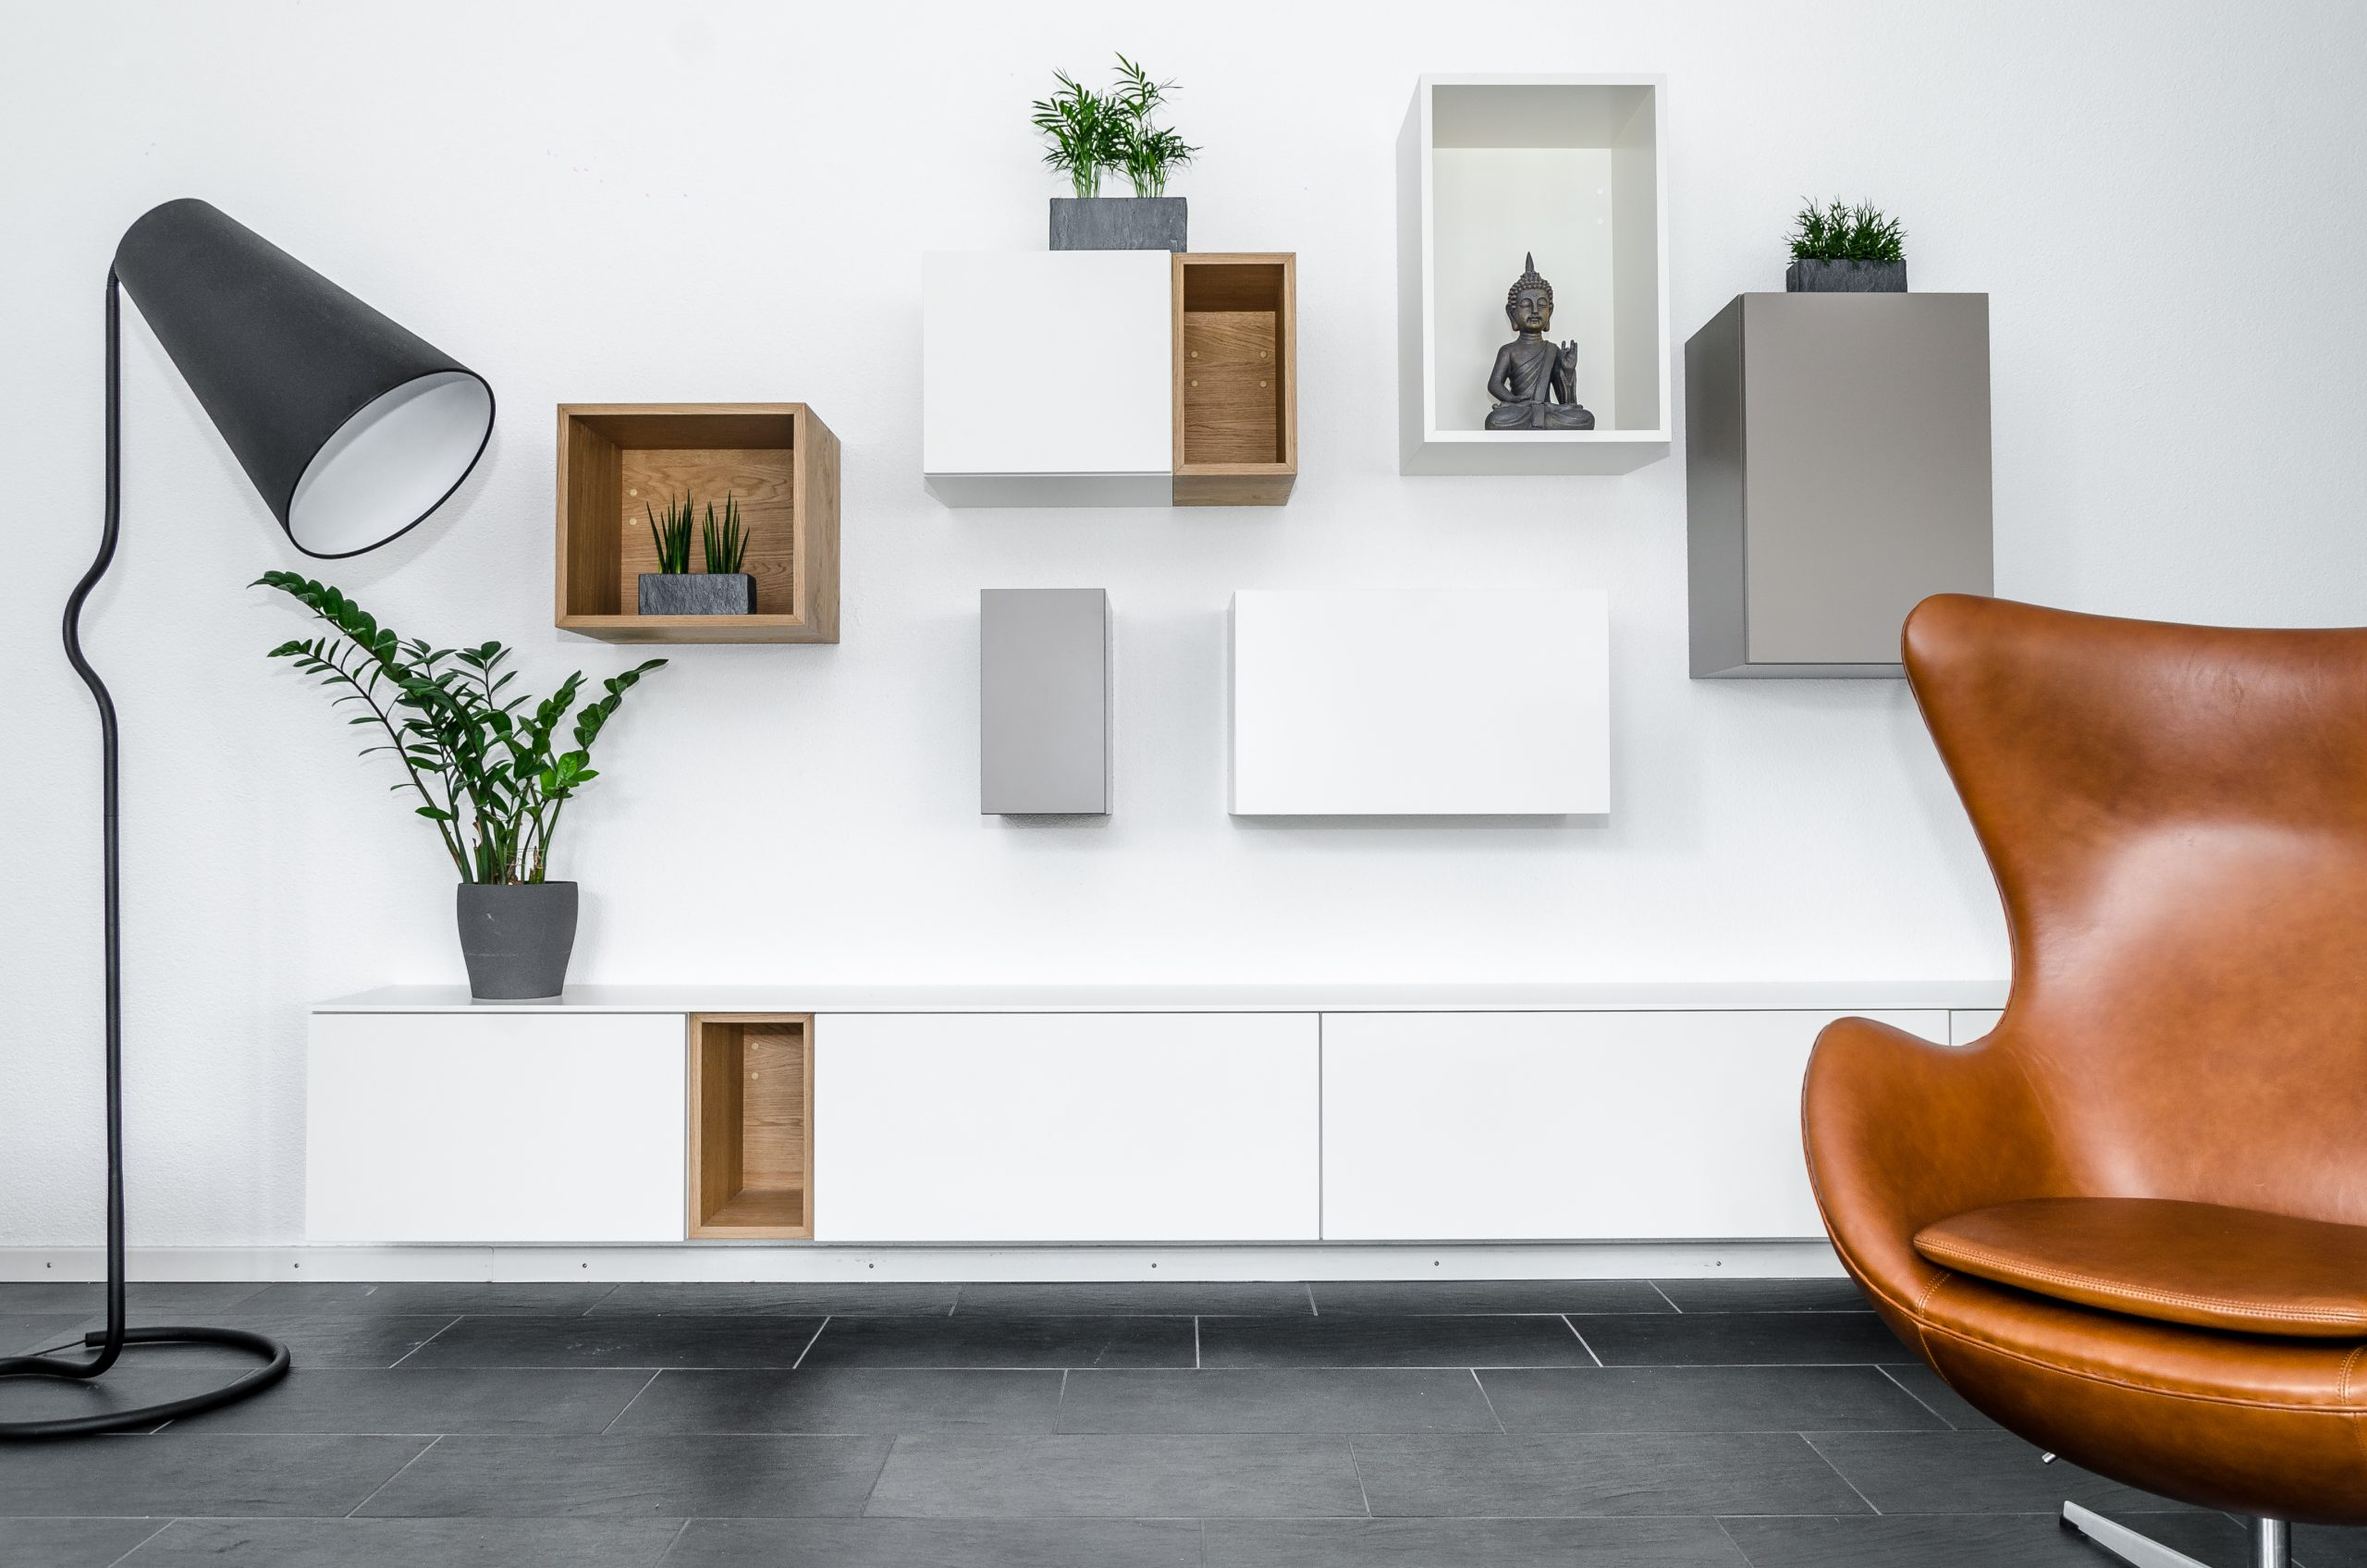 wall elements and egg chair